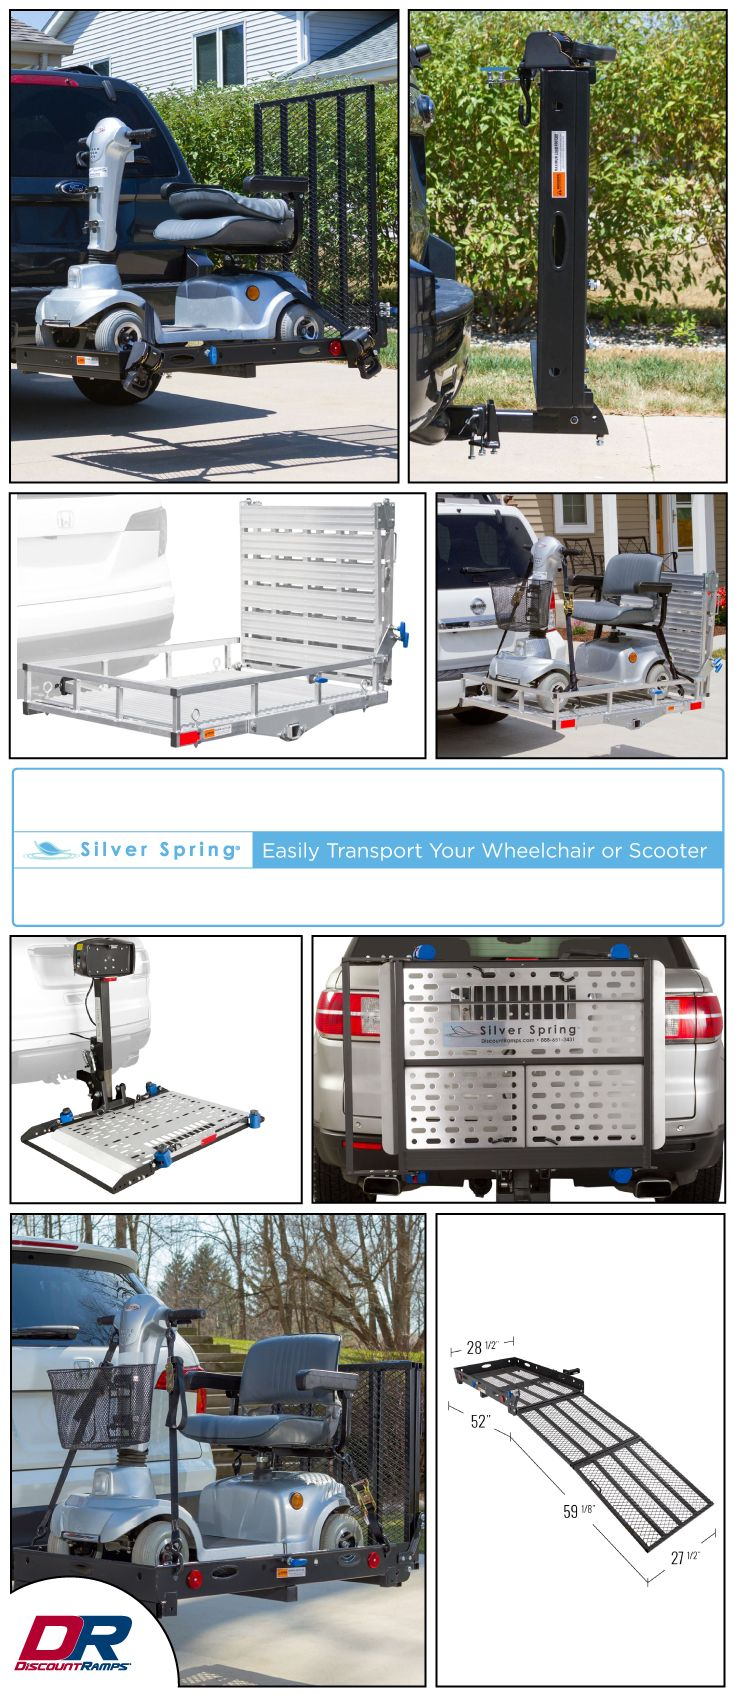 fea6e60b4b High-quality wheelchair lifts and carriers can transport your mobility  device on the outside of your vehicle